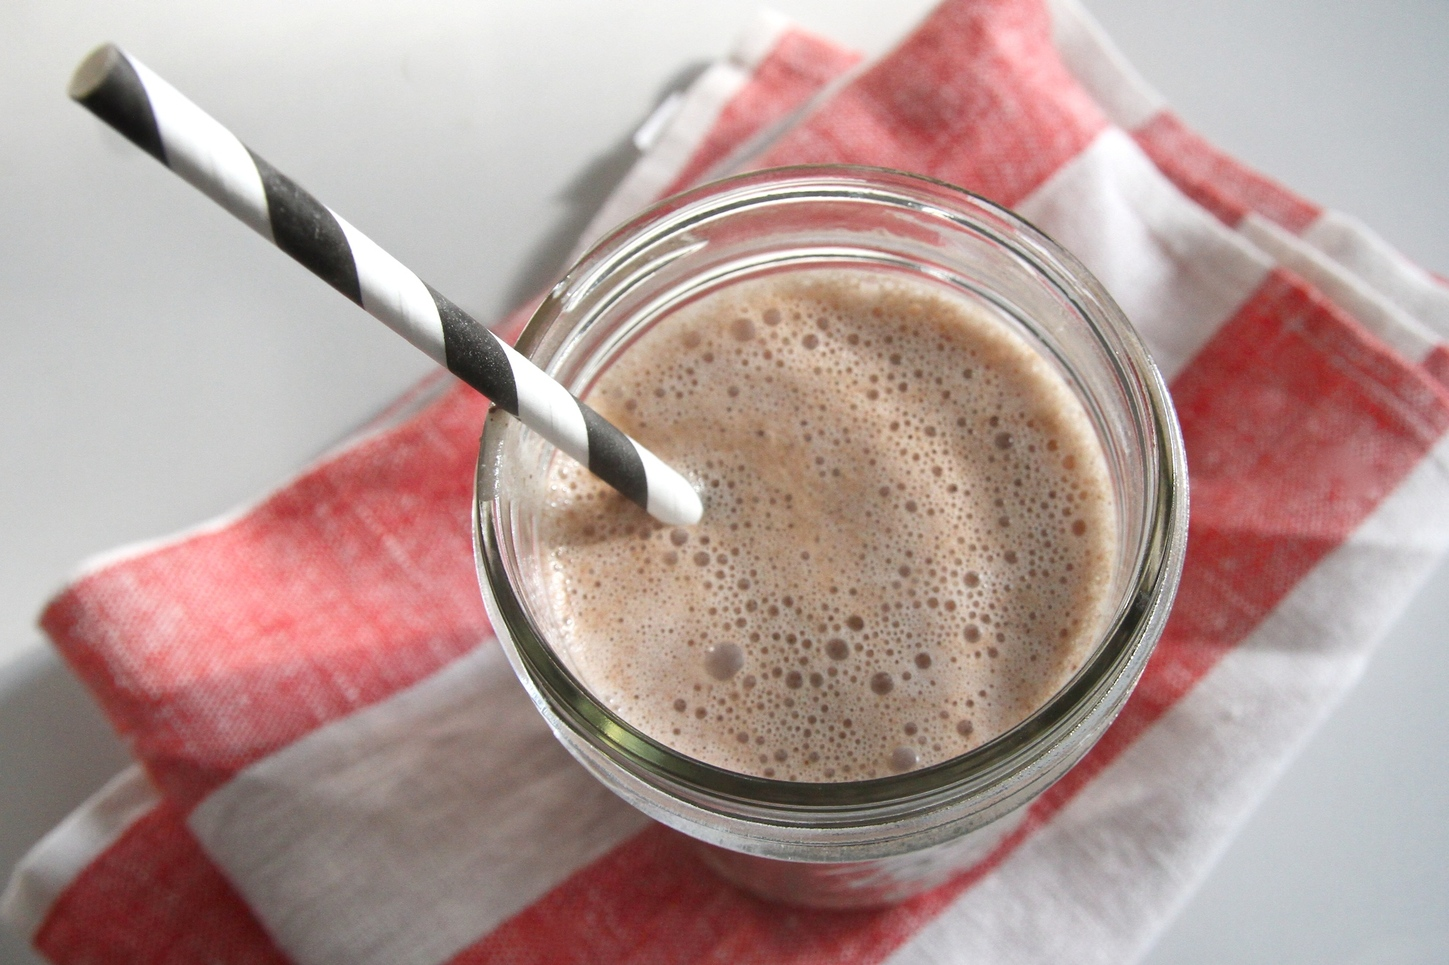 Just to clarify, the recipe includes chocolate and milk. - Image Credi:  tracy benjamin ,  CC BY-NC-ND